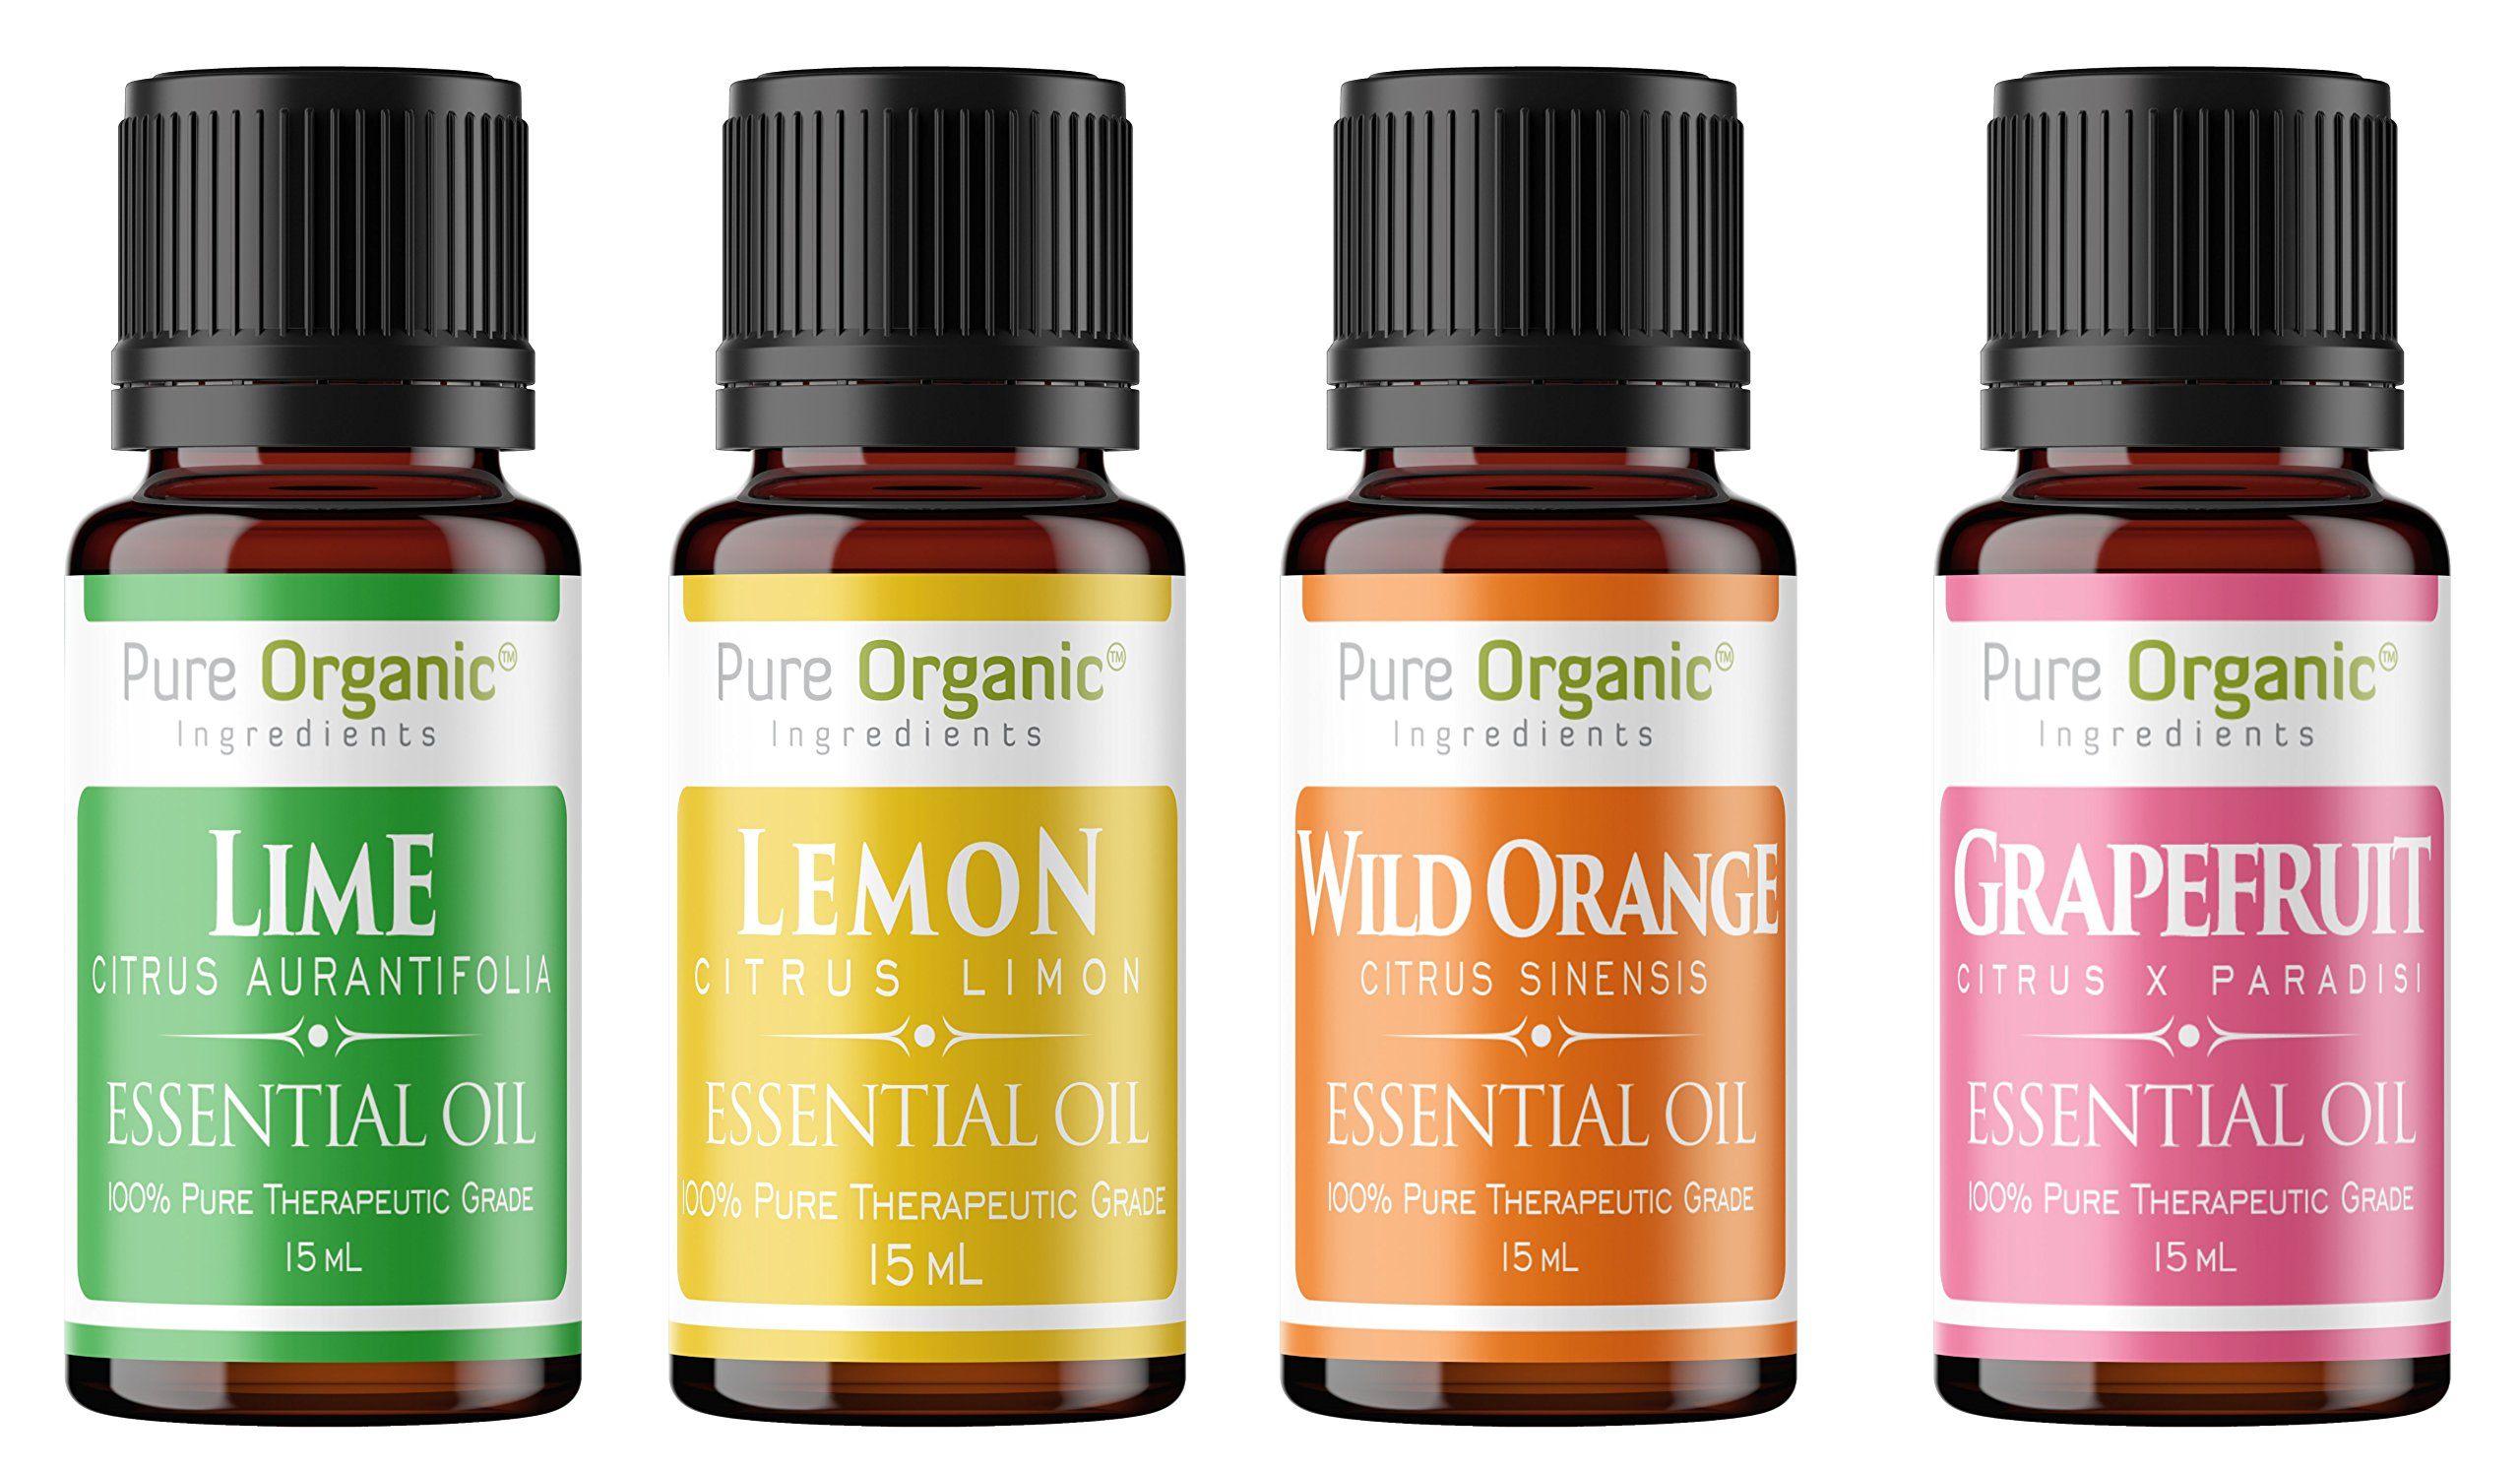 Citrus Essential Oil 4 Piece Gift Set by Pure Organic Ingredients, Grapefruit, Lemon, Lime & Wild Orange, Full Size 15 mL Bottles, Highest Quality, Food Grade, Starter Pack, Edible by Pure Organic Ingredients